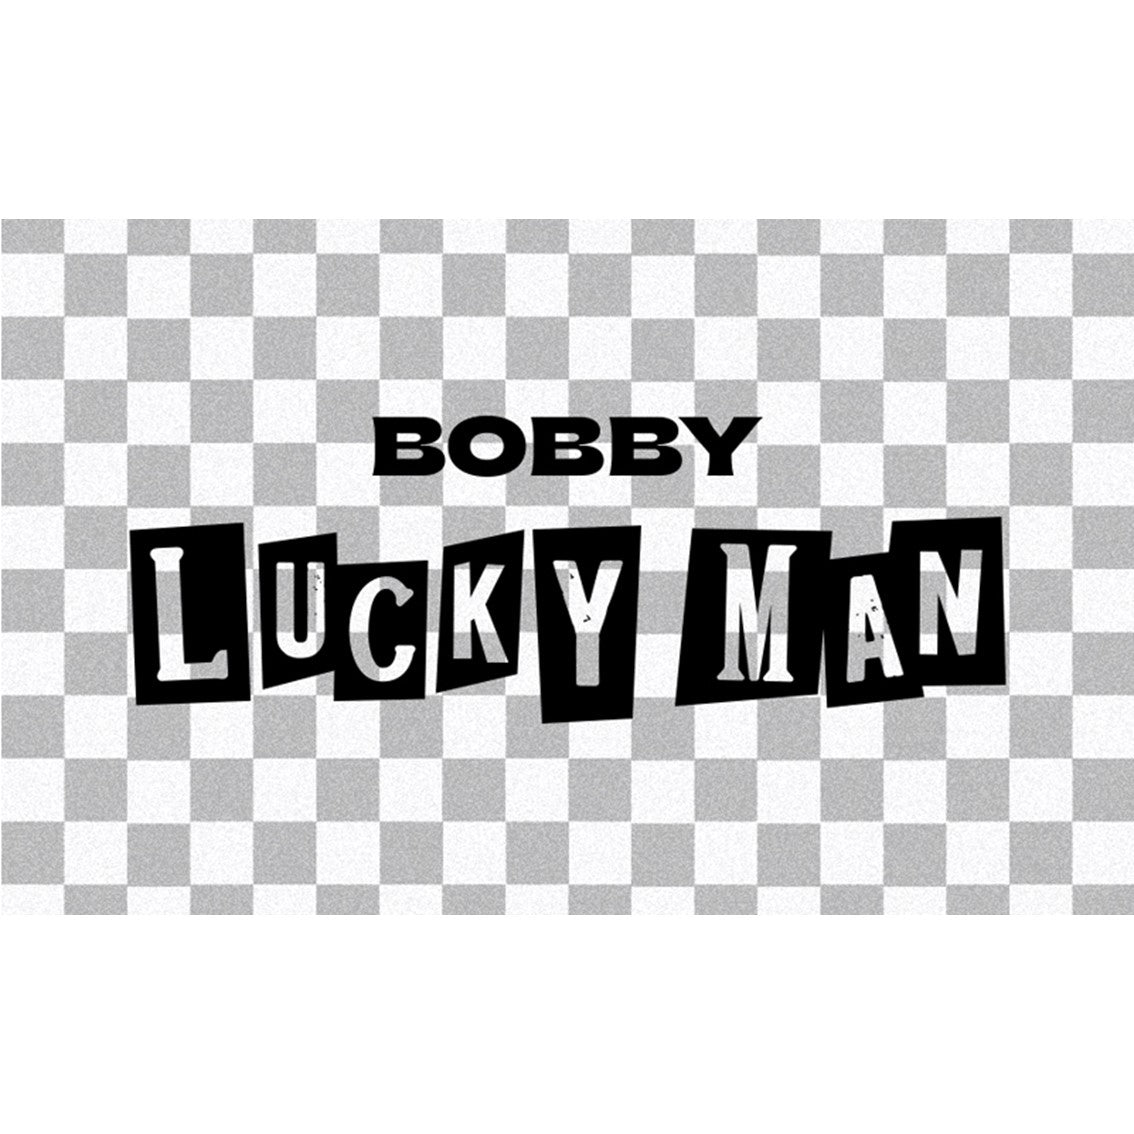 BOBBY - 2nd Album - Lucky Man (Kit version)